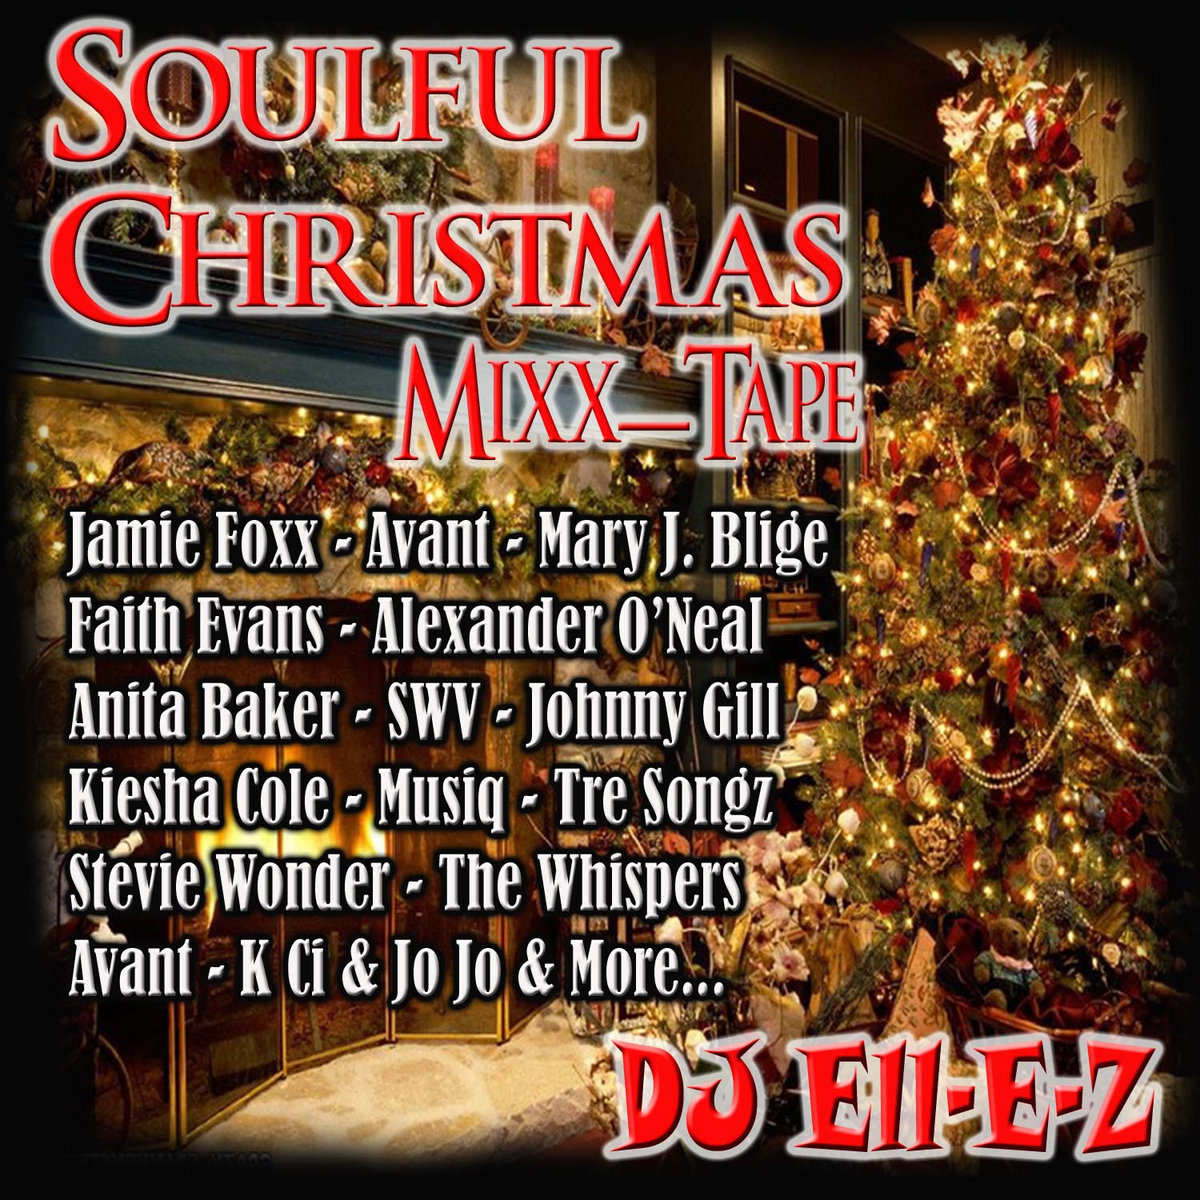 Luther Vandross Christmas.A Kiss For Christmas Luther Vandross Dj El Le Z